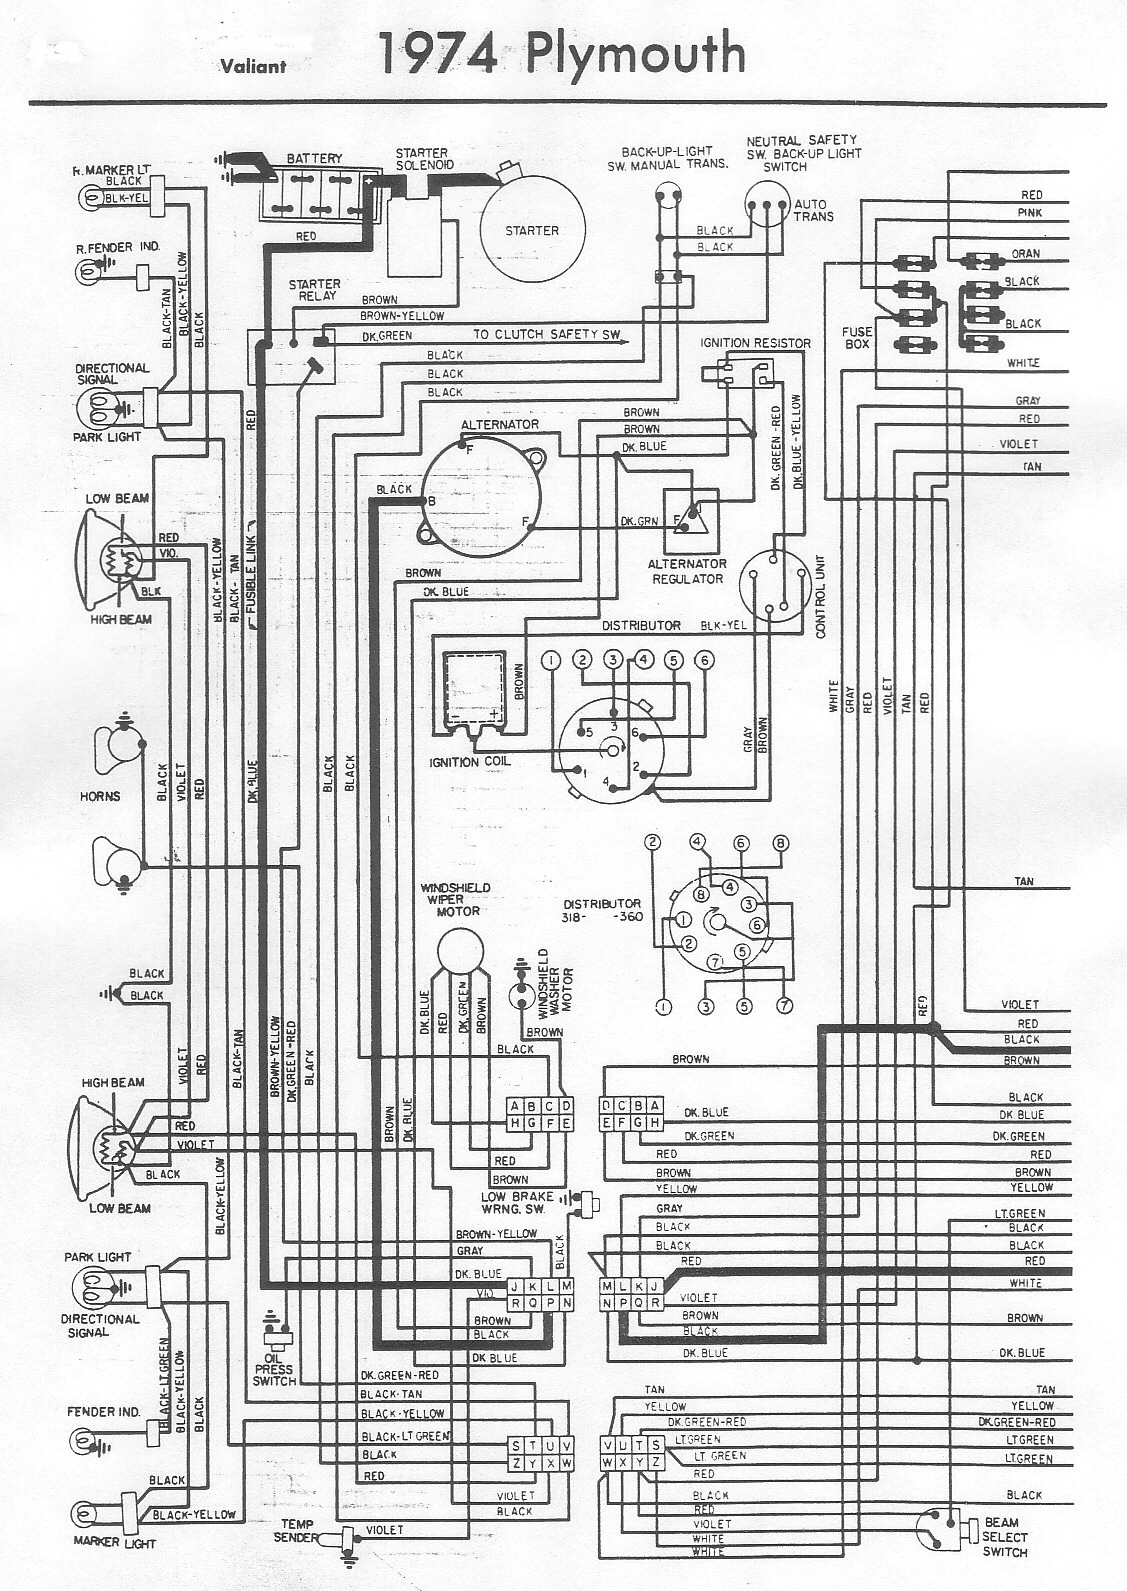 72 challenger wiring diagram get free image about wiring diagram rh autonomia co